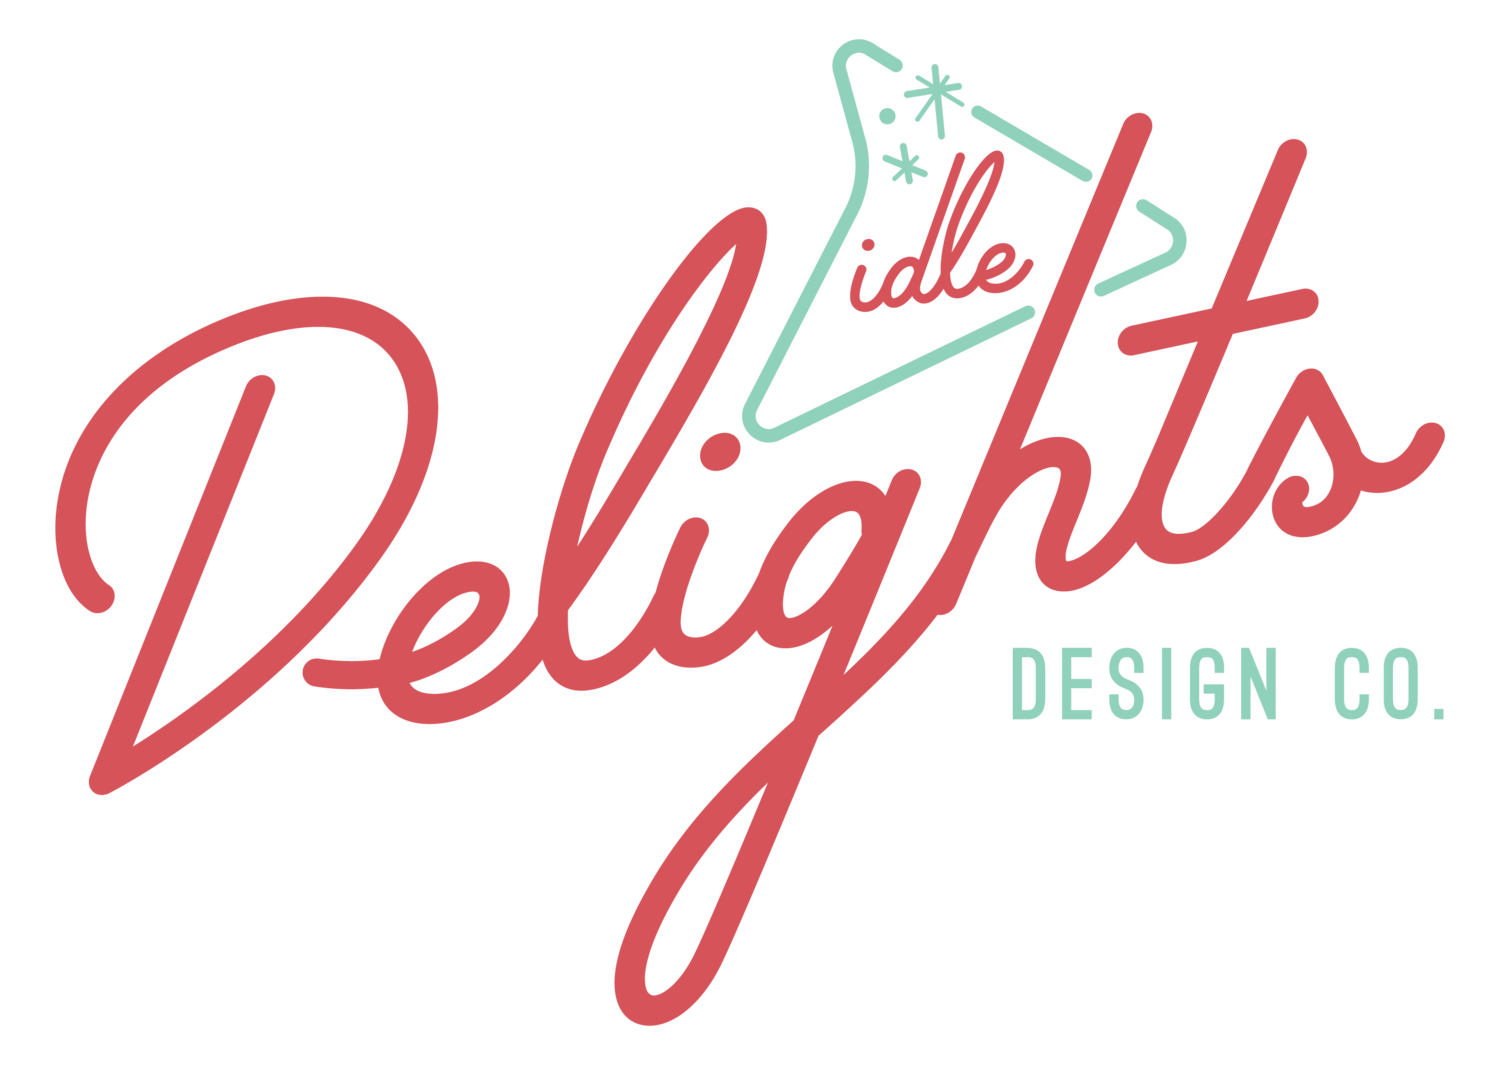 Idle Delights Design Co.